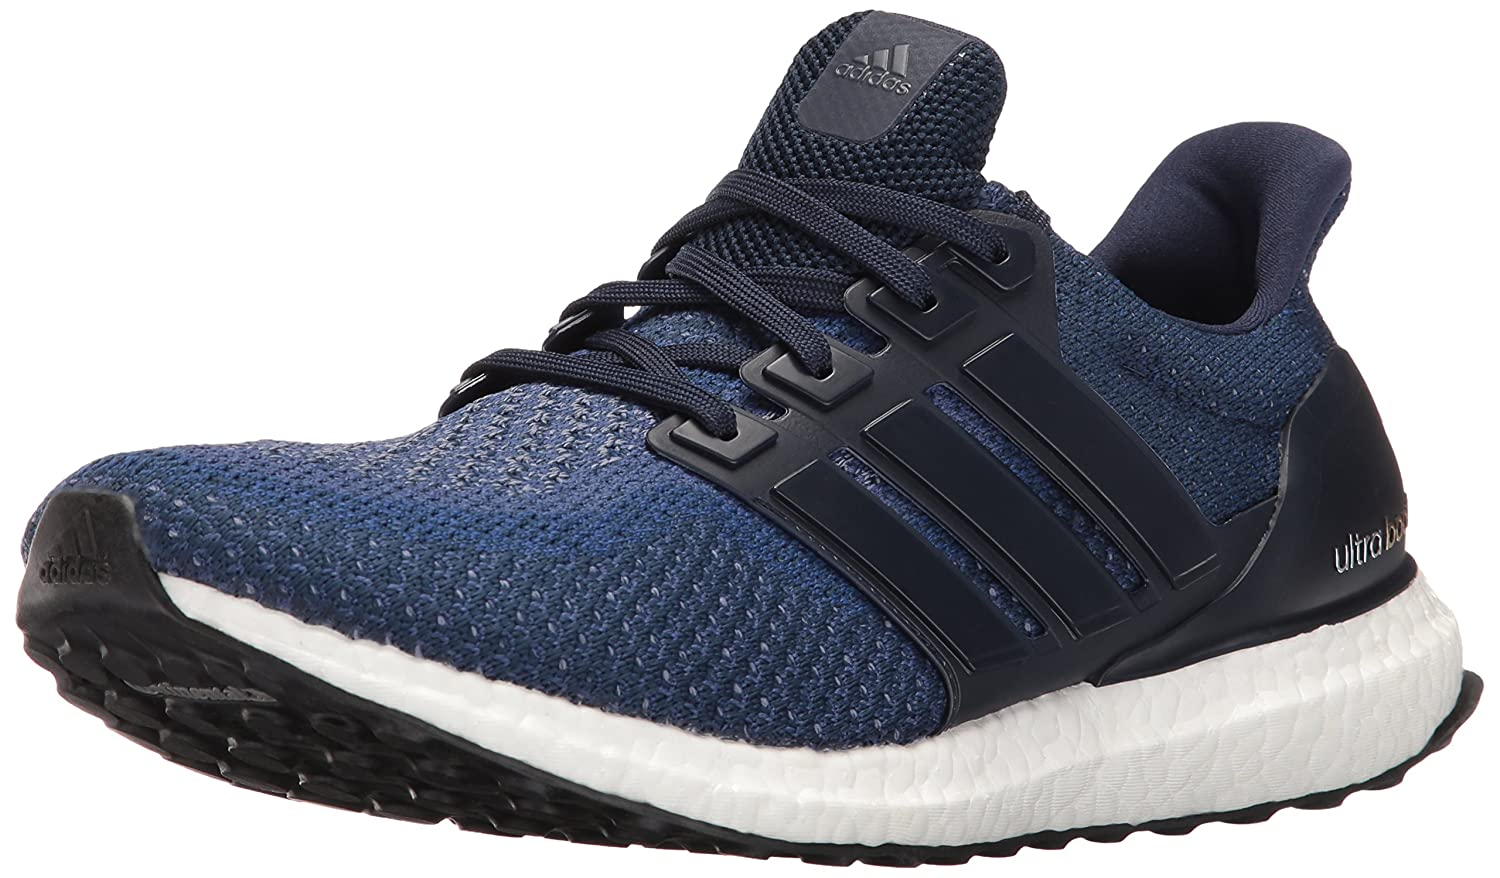 adidas Performance Men's Ultra Boost M Running Shoe B01CGX0VSE 7.5 D(M) US|Collegiate Navy/Collegiate Navy/Night Navy